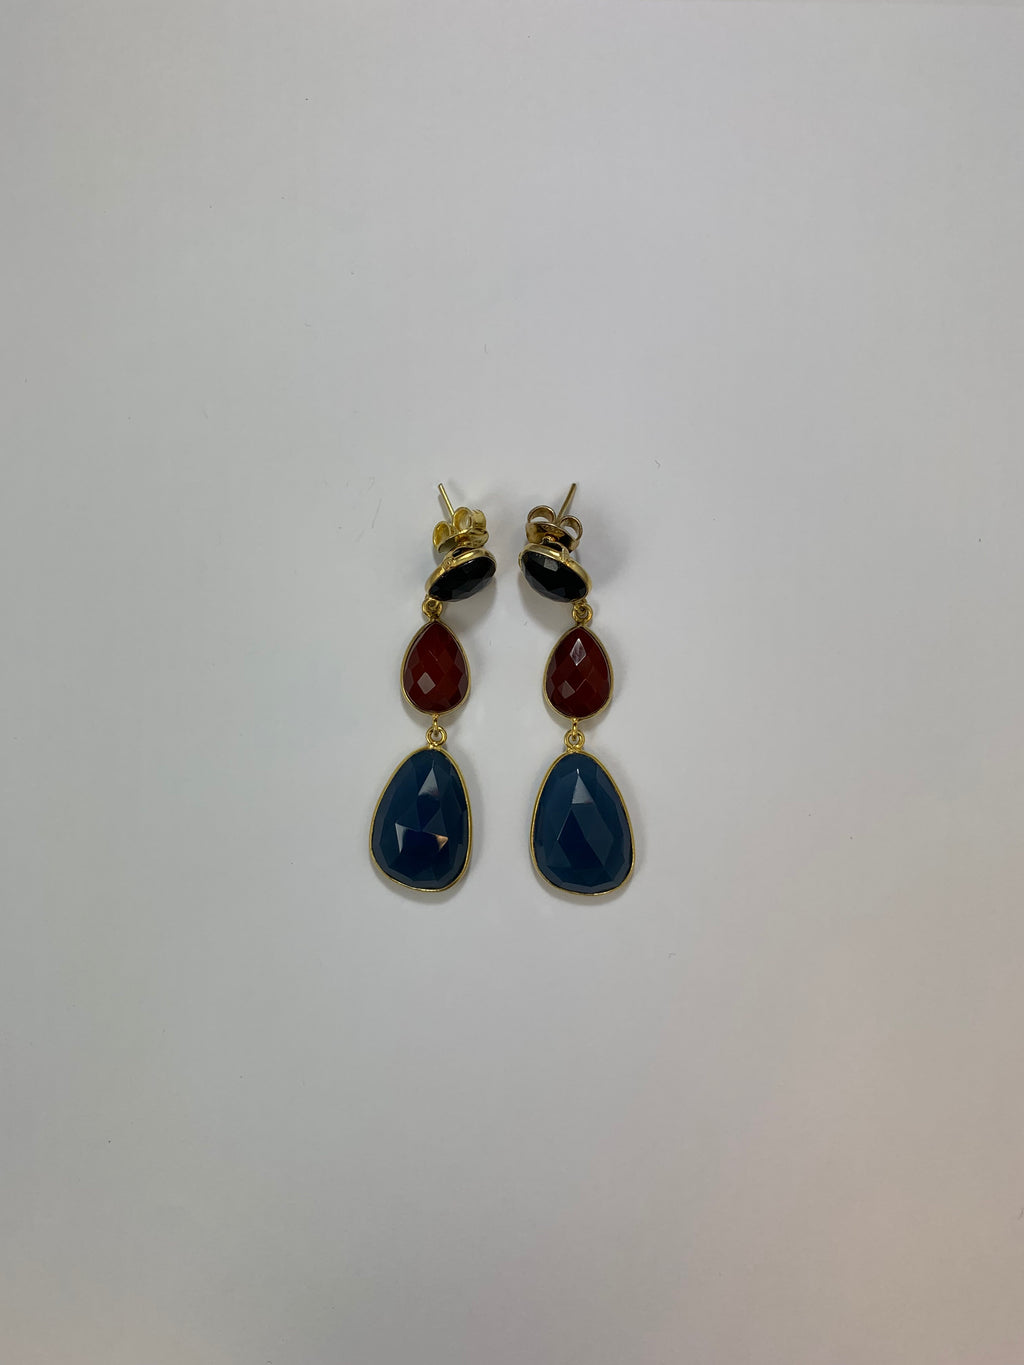 Sterling Silver Vermeil 3 Stone Drop Earrings Blue Agate, Cornelian,Amethyst